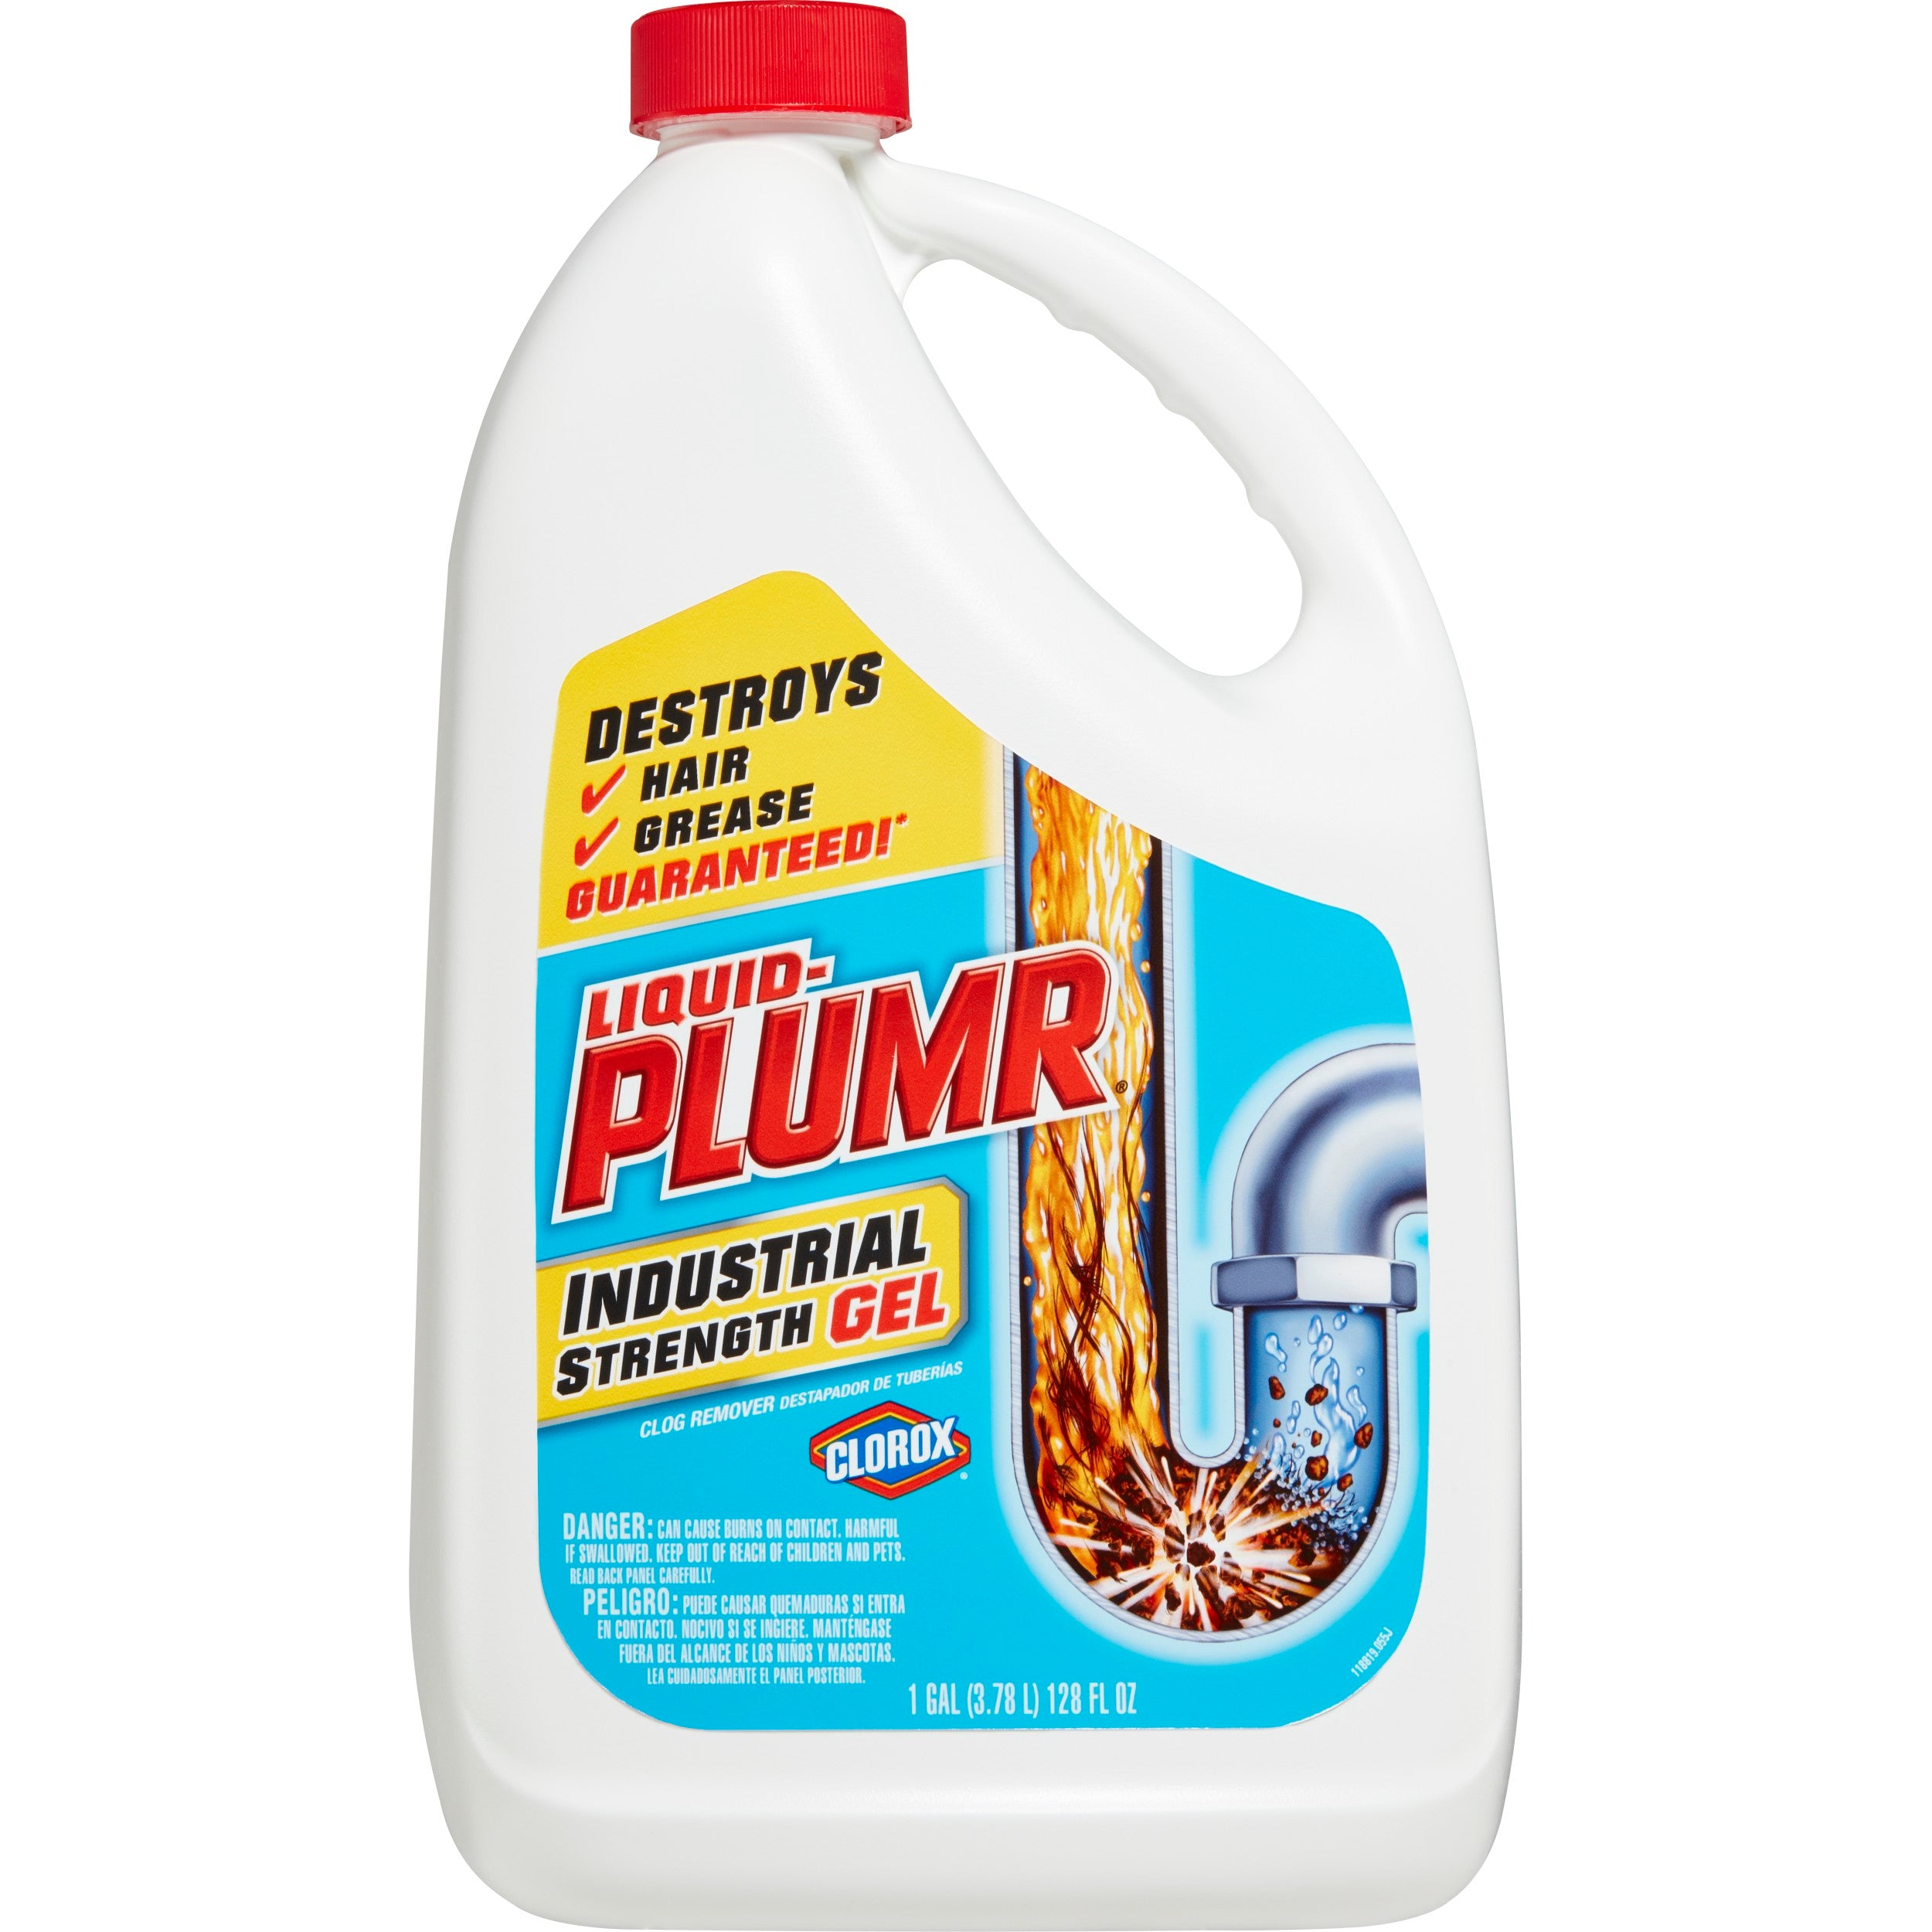 Liquid-Plumr Industrial Strength Gel Drain Cleaner, 128 oz - FLJ CORPORATIONS